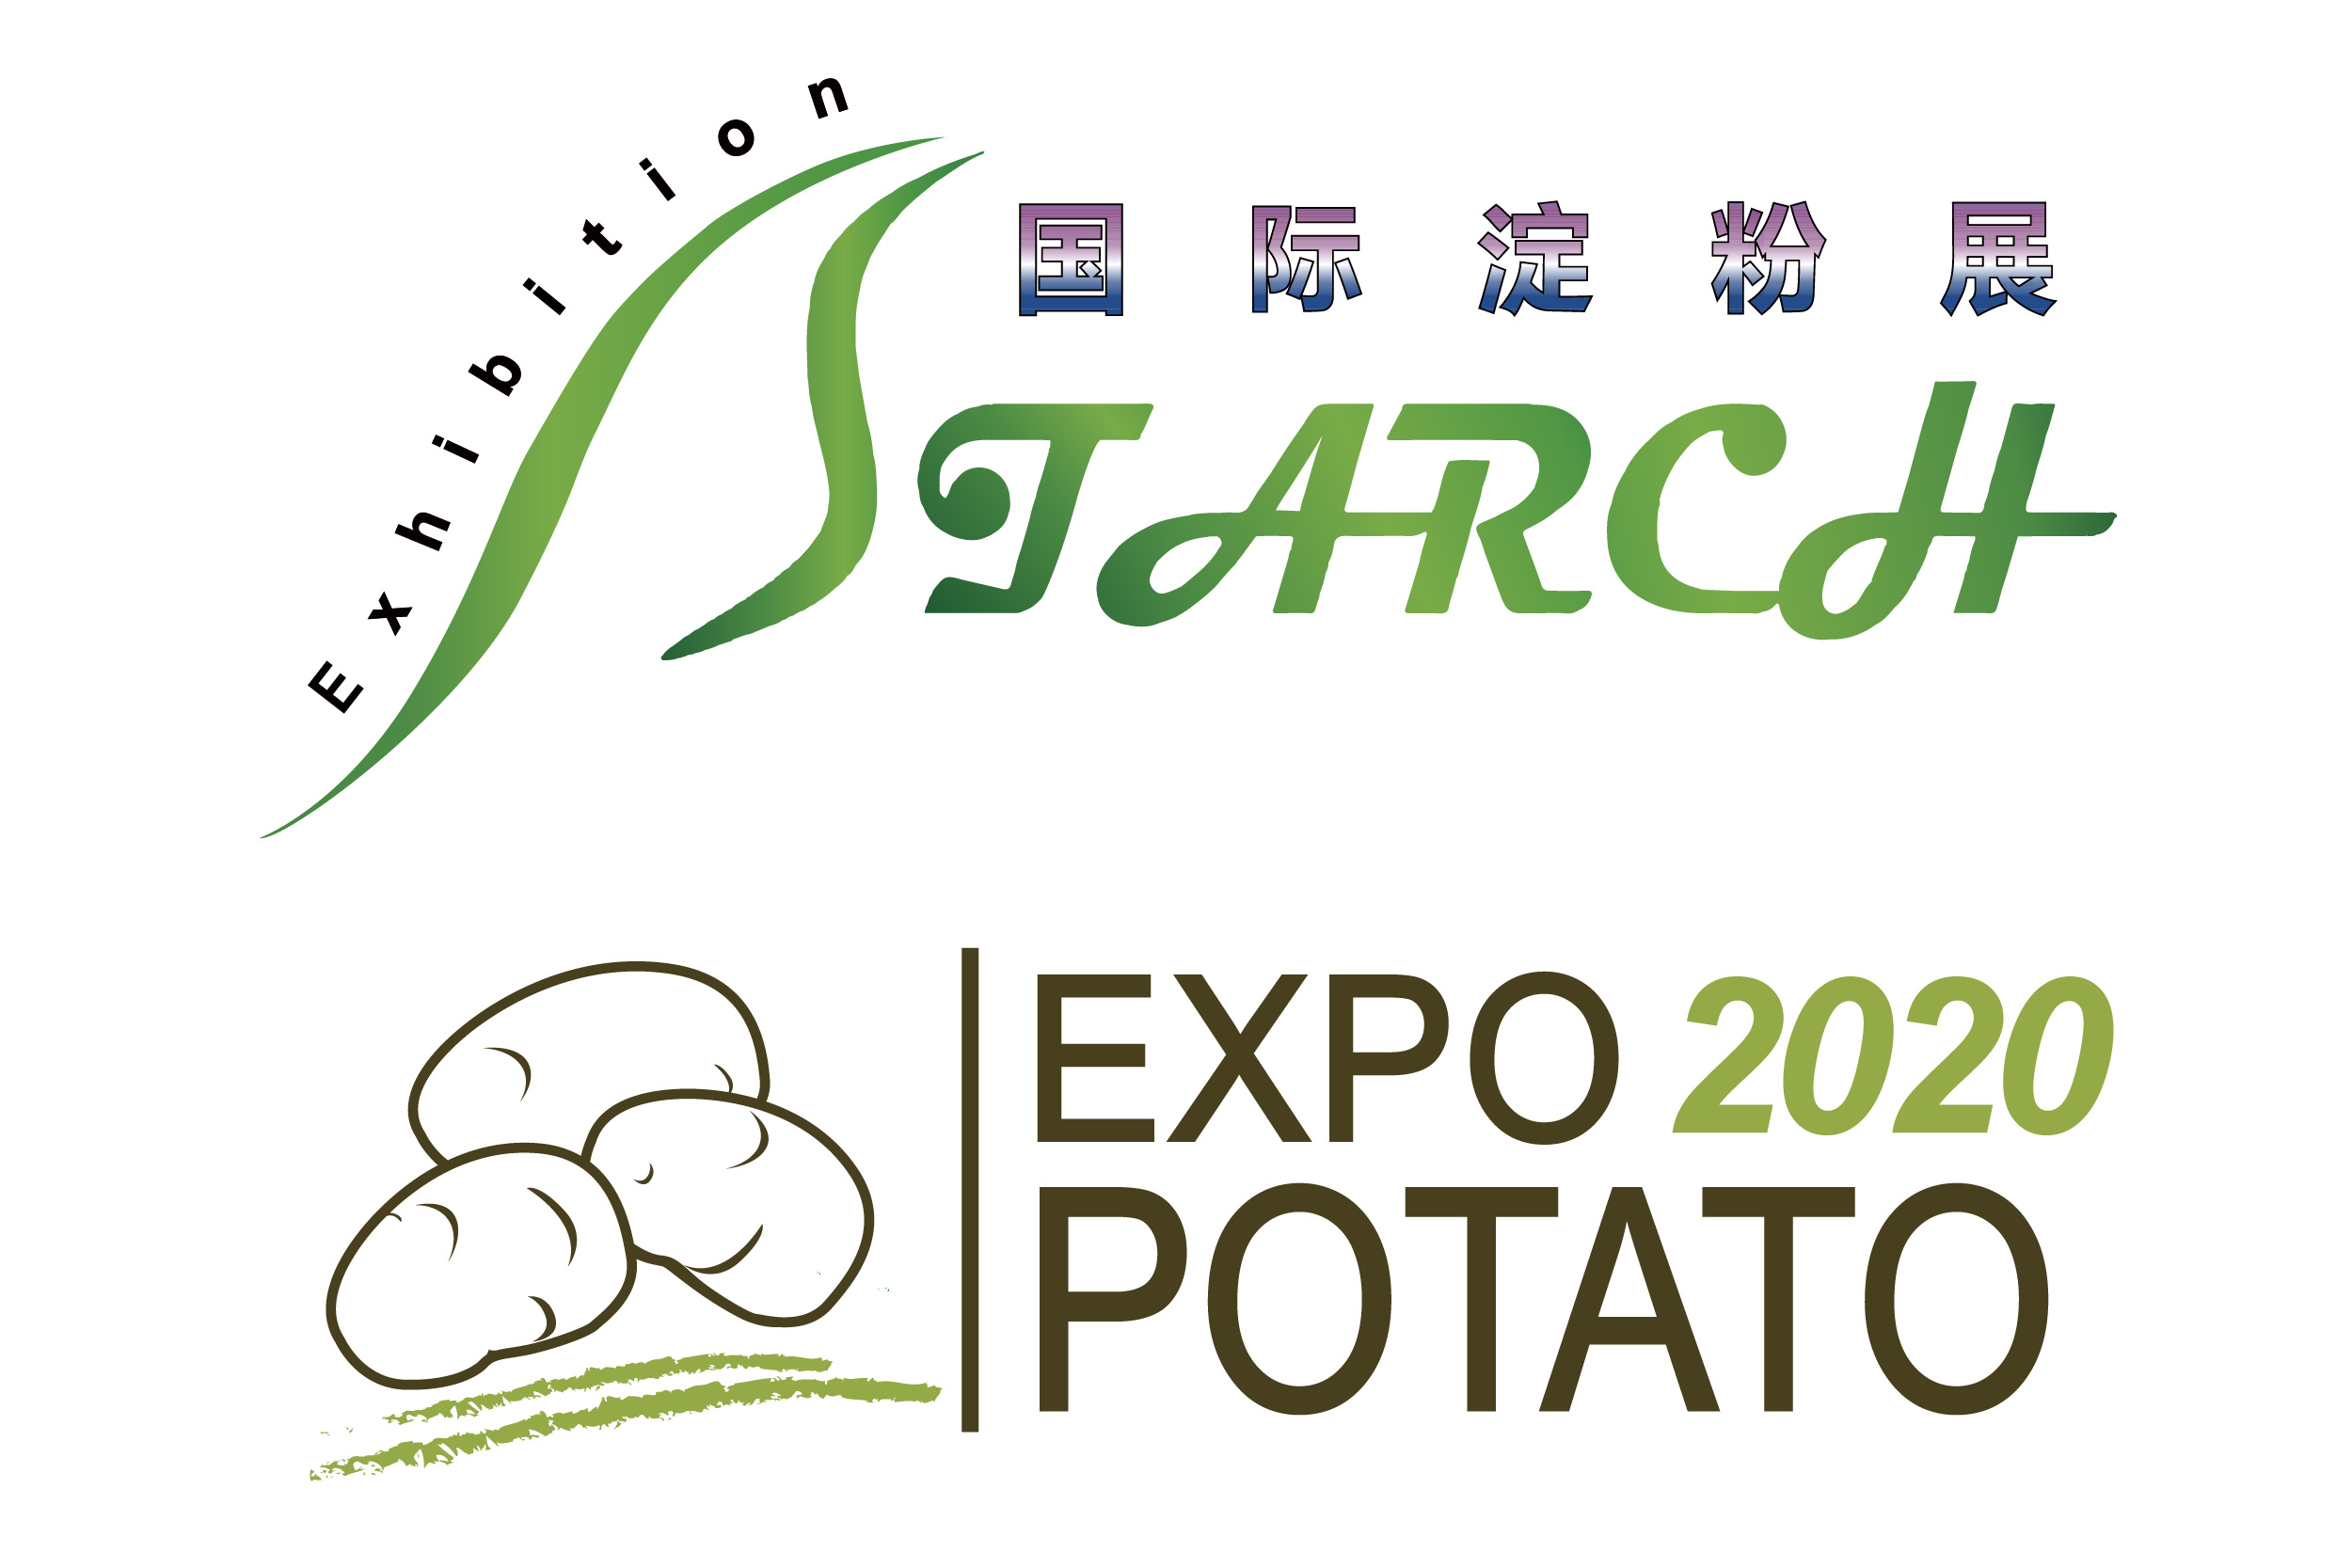 STARCH EXPO 2020 & POTATO EXPO 2020